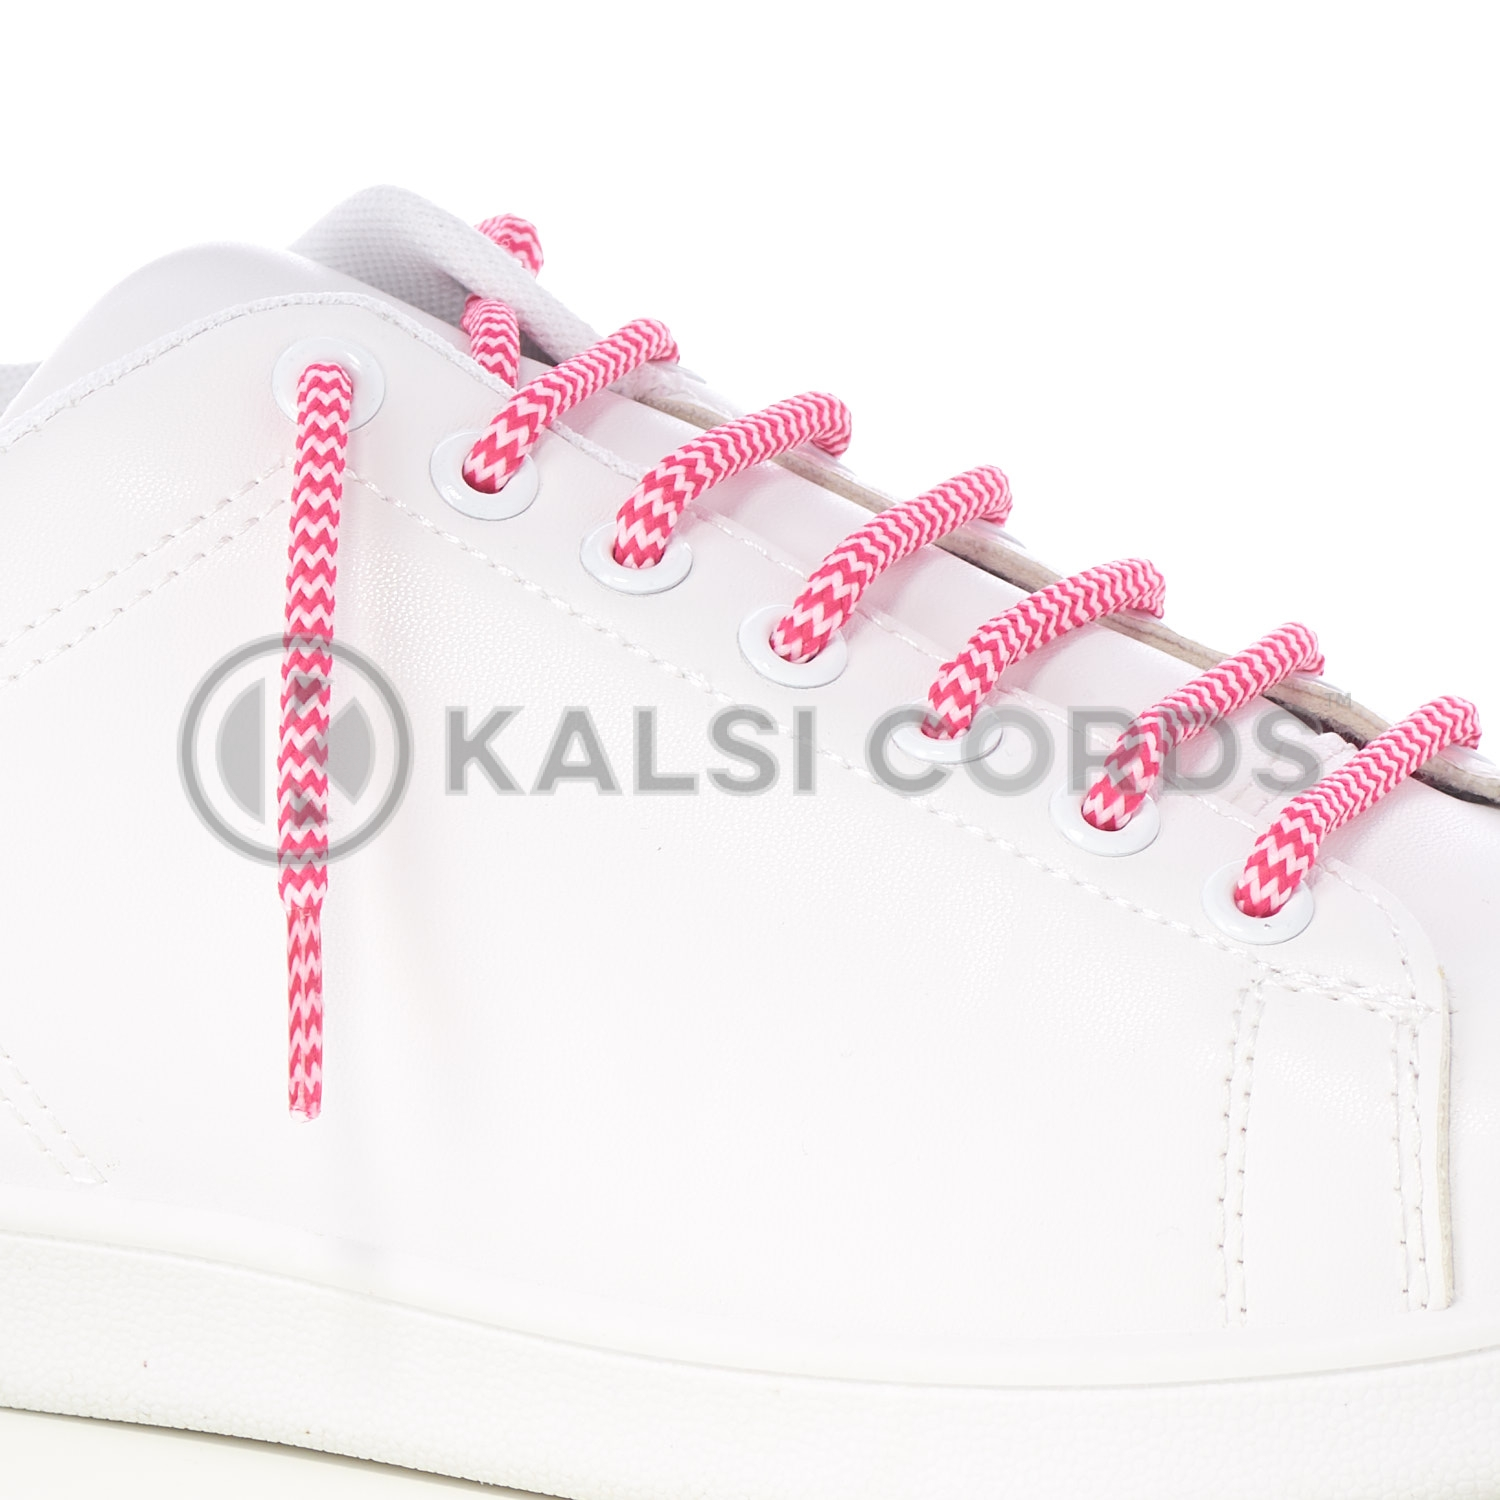 T621 5mm Round Cord Shoe Lace Cerise Baby Pink Herringbone Pattern Kids Trainers Adults Hiking Walking Boots Kalsi Cords